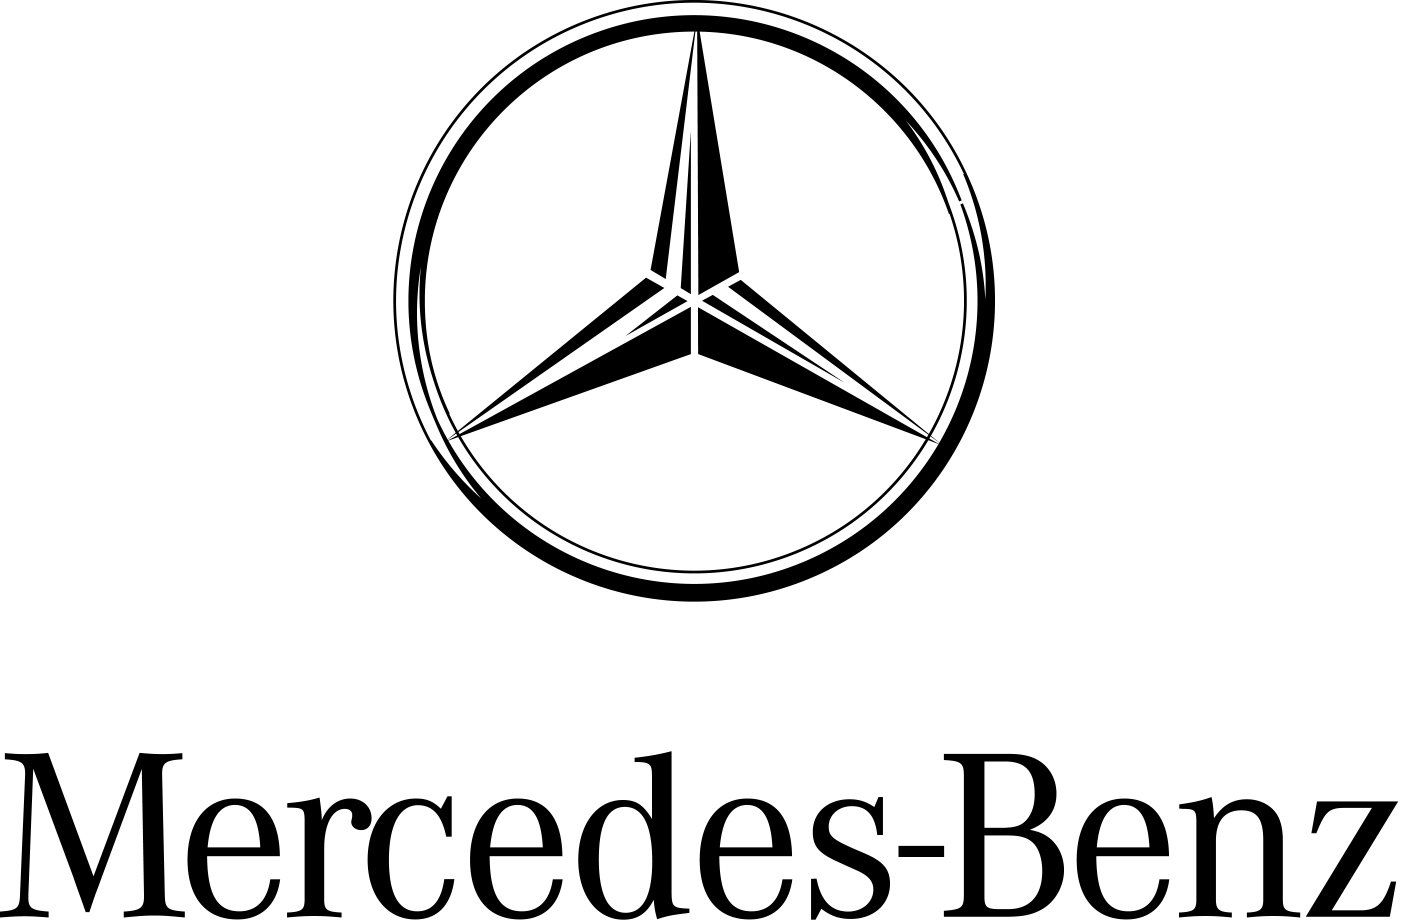 car logo with horse in circle